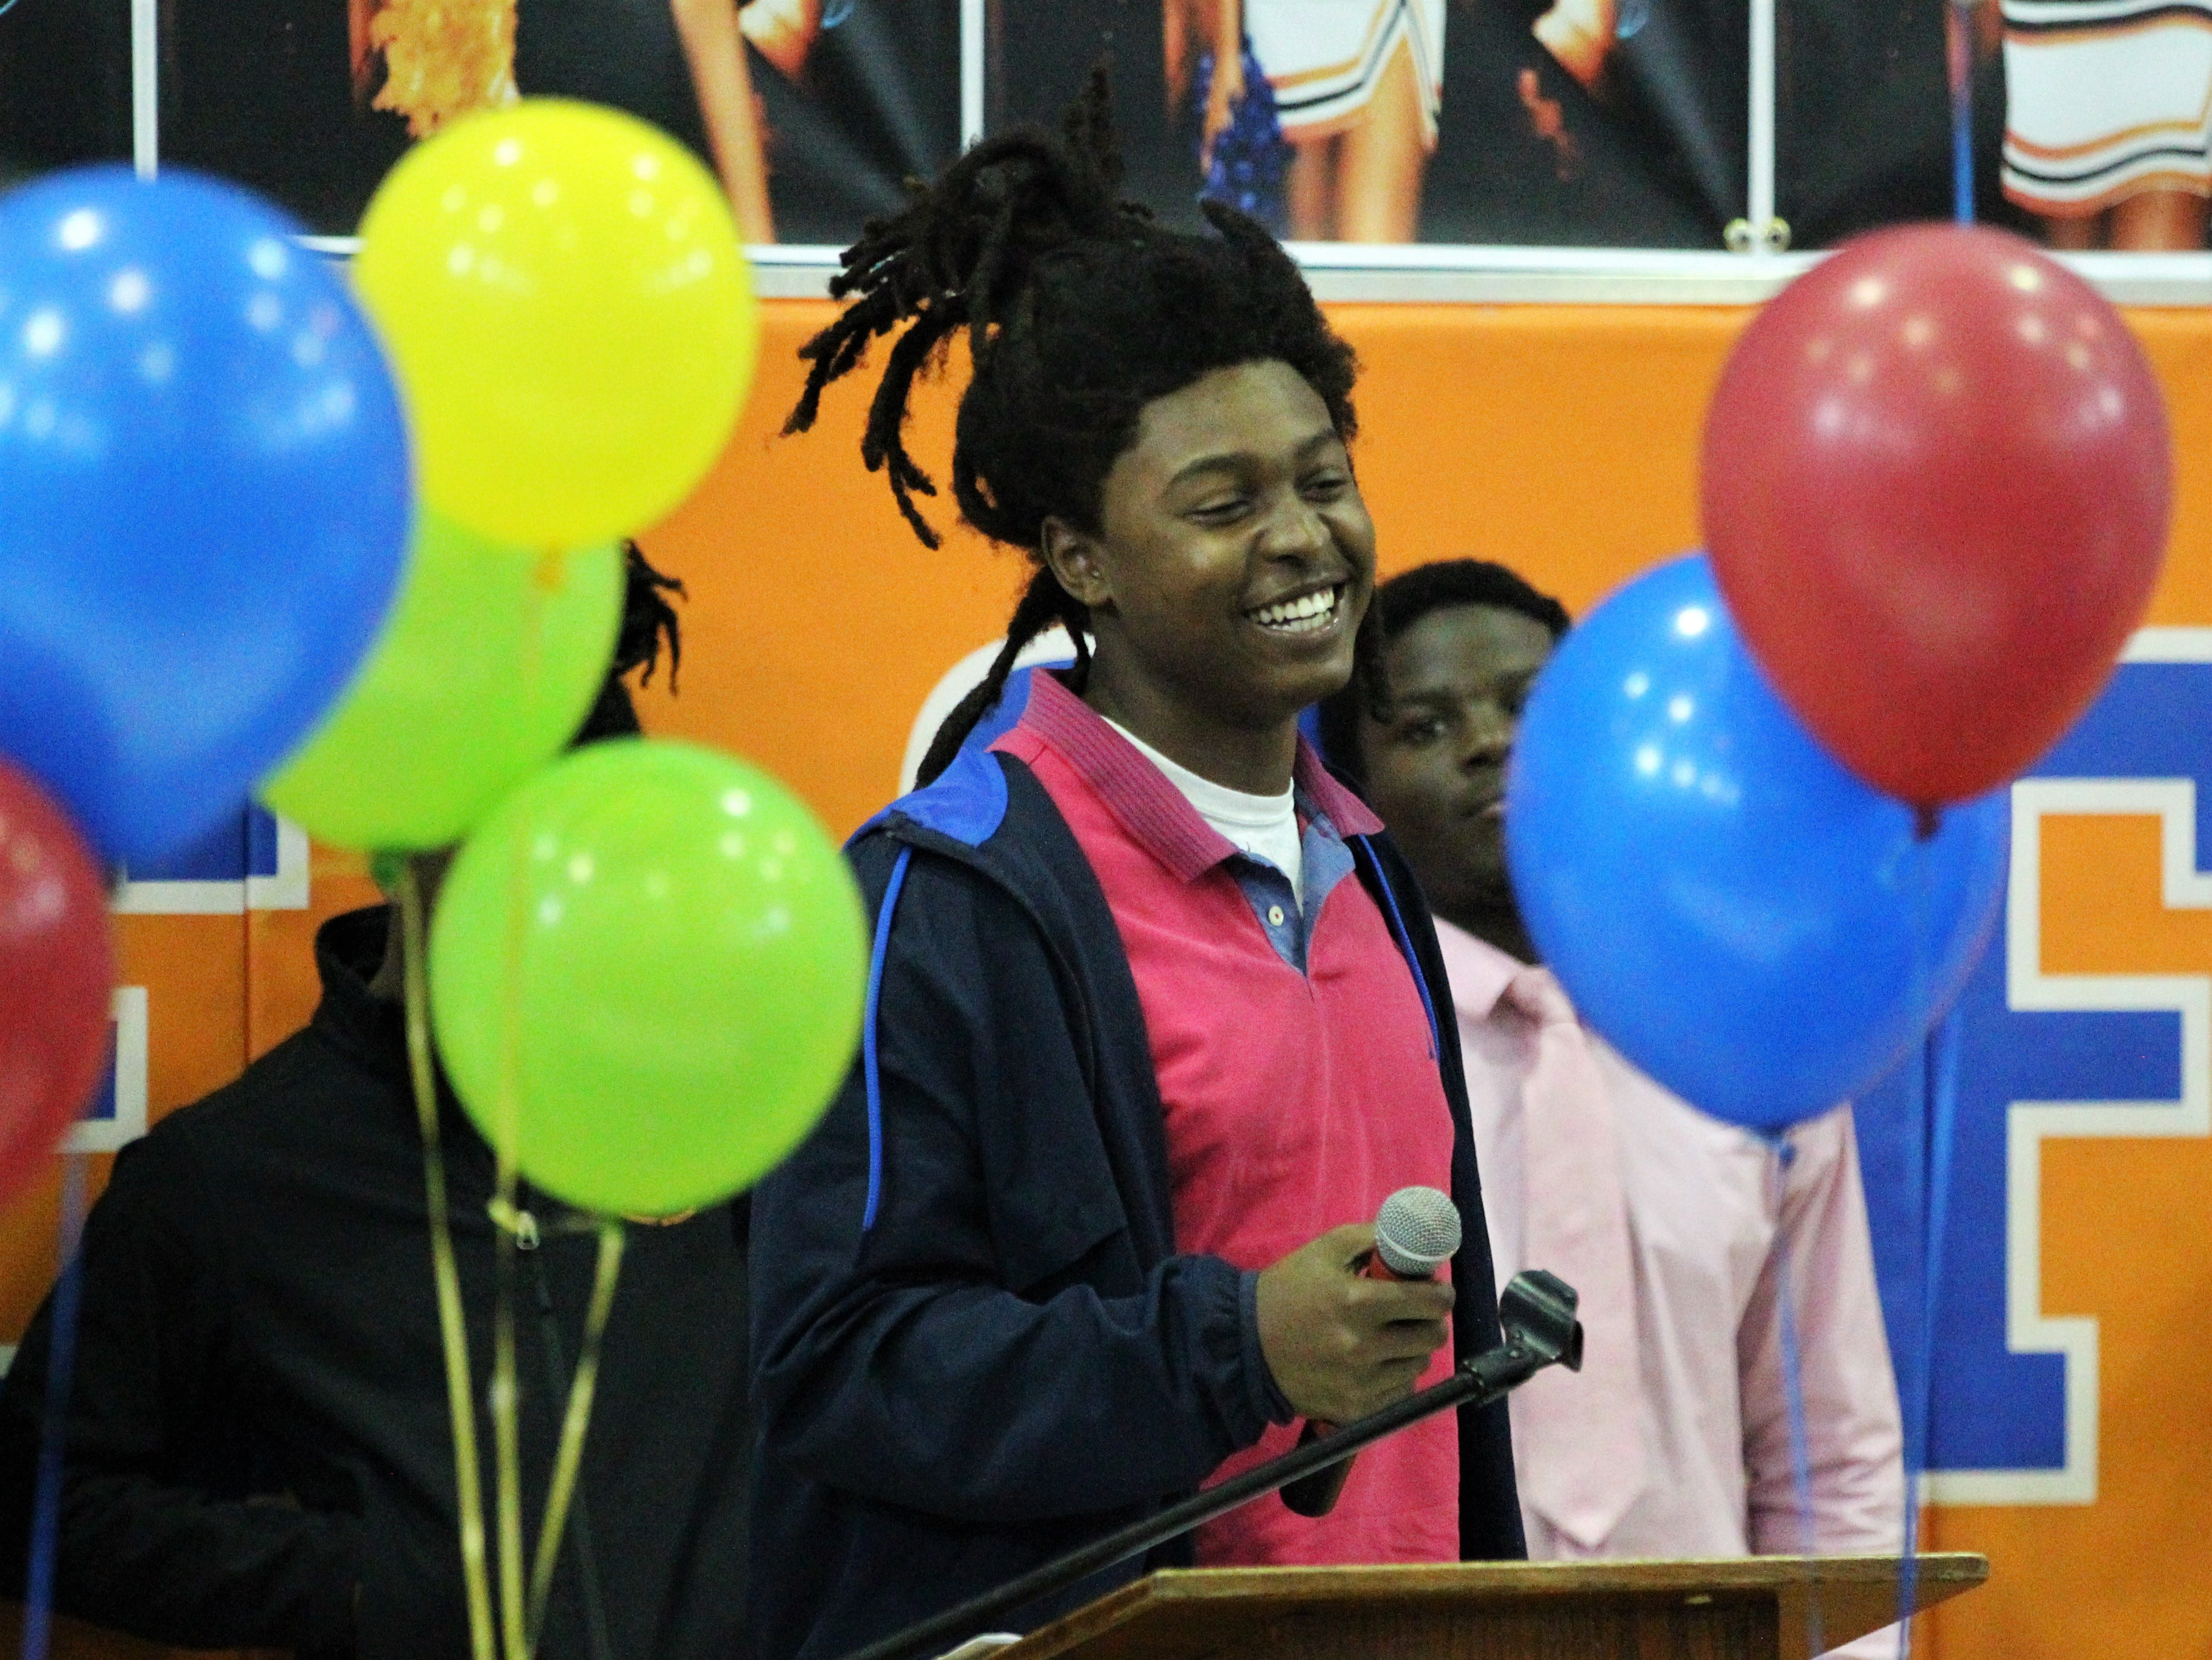 Jefferson County defensive lineman Kimiri Thomas laughs while speaking during Jefferson County's signing day ceremony on Feb. 13, 2019. Thomas signed with Mesabi Range College.